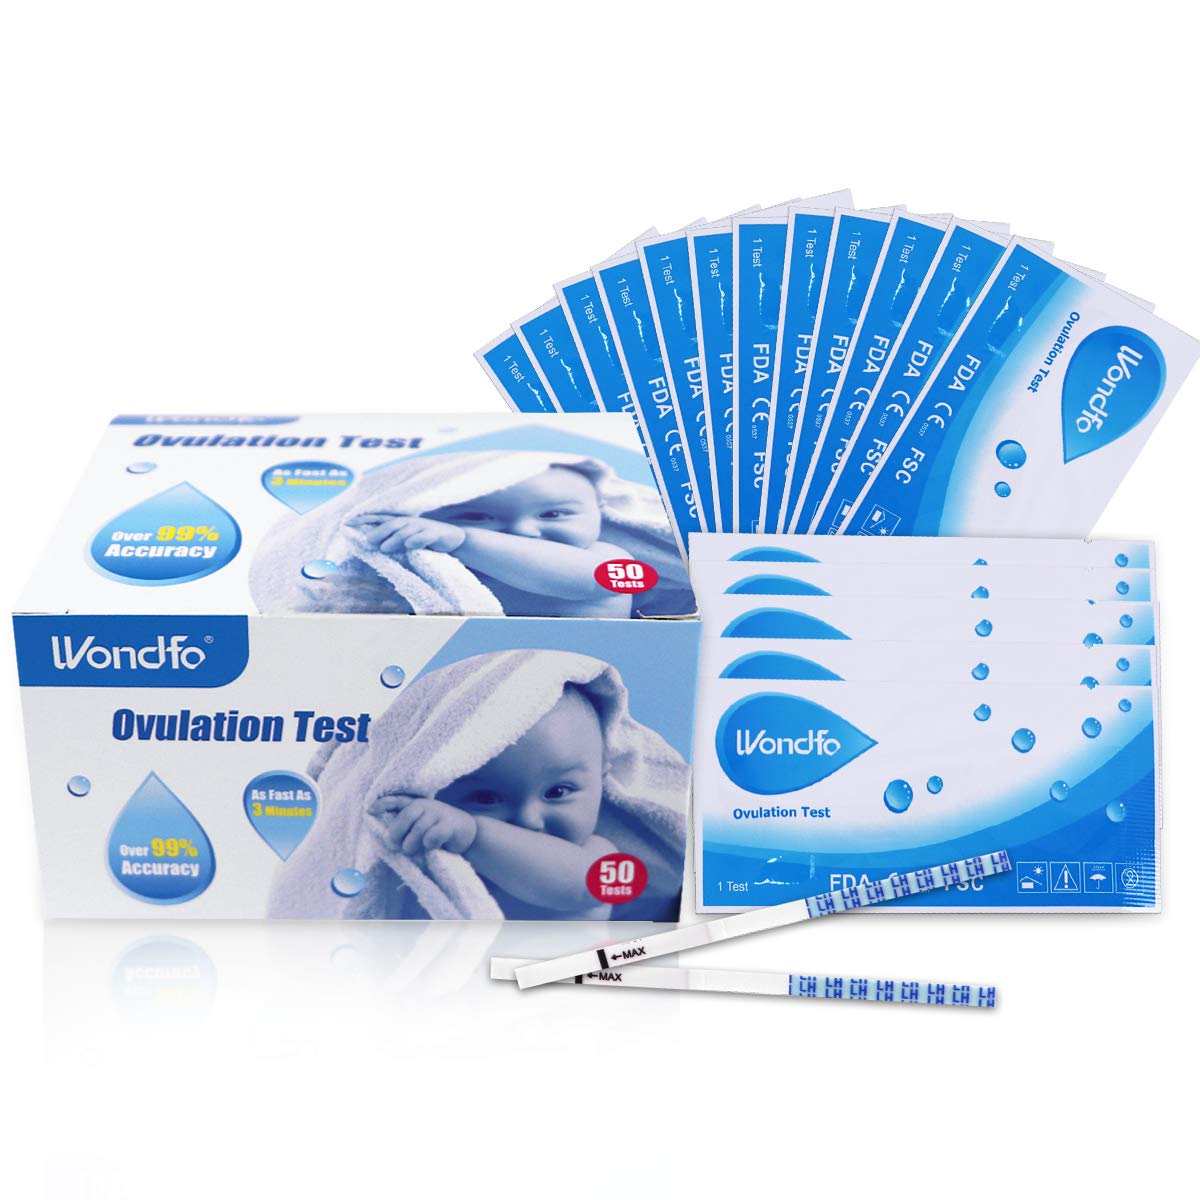 Wondfo Ovulation Strips Ultra Early Result Detection Kits Highly Sensitive Fast Home Self-Checking, Pack of 50 by Wondfo